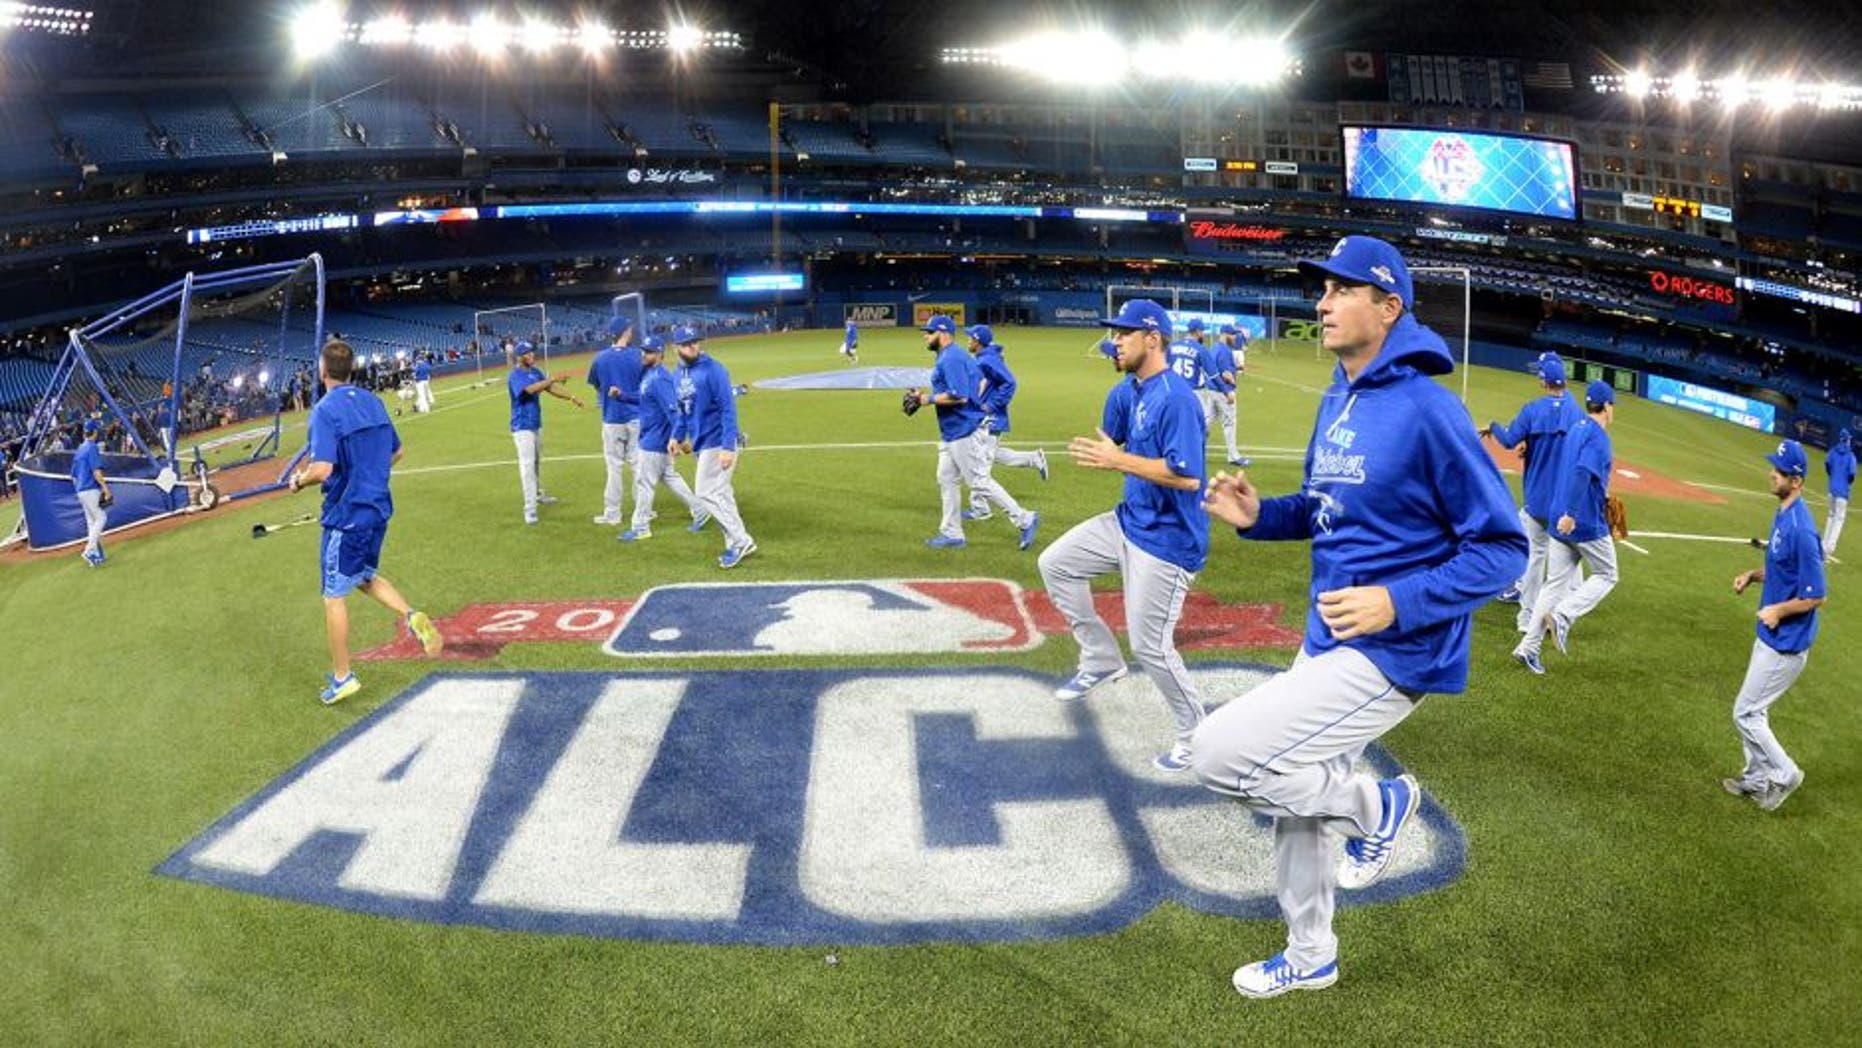 TORONTO, CANADA - OCTOBER 21: Members of the Kansas City Royals loosen up during batting practice before Game 5 of the ALCS against the Toronto Blue Jays at the Rogers Centre on Wednesday, October 21, 2015 in Toronto, Canada. (Photo by Jon Blacker/MLB Photos via Getty Images)